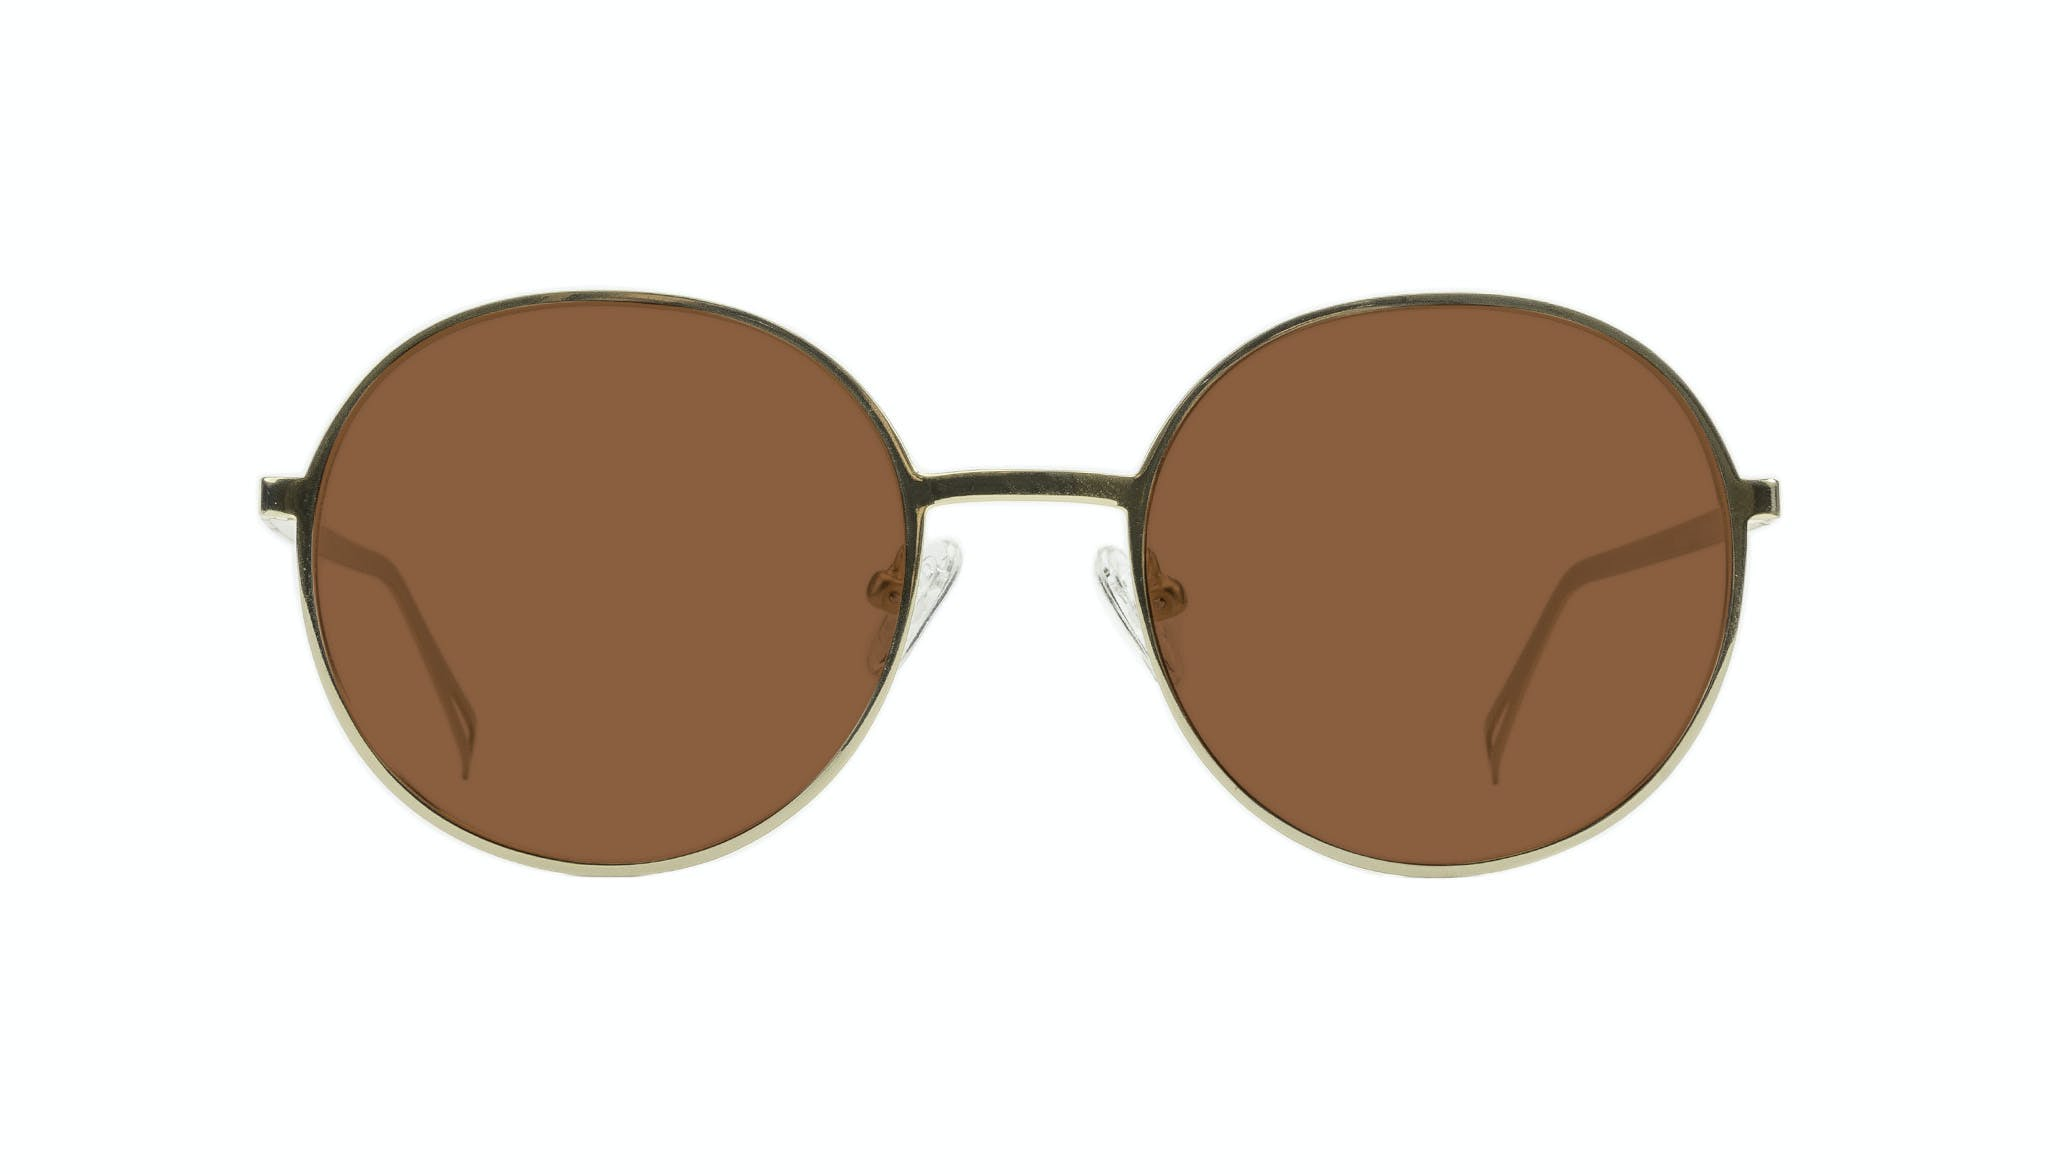 Affordable Fashion Glasses Round Sunglasses Men Women Varna Gold Front